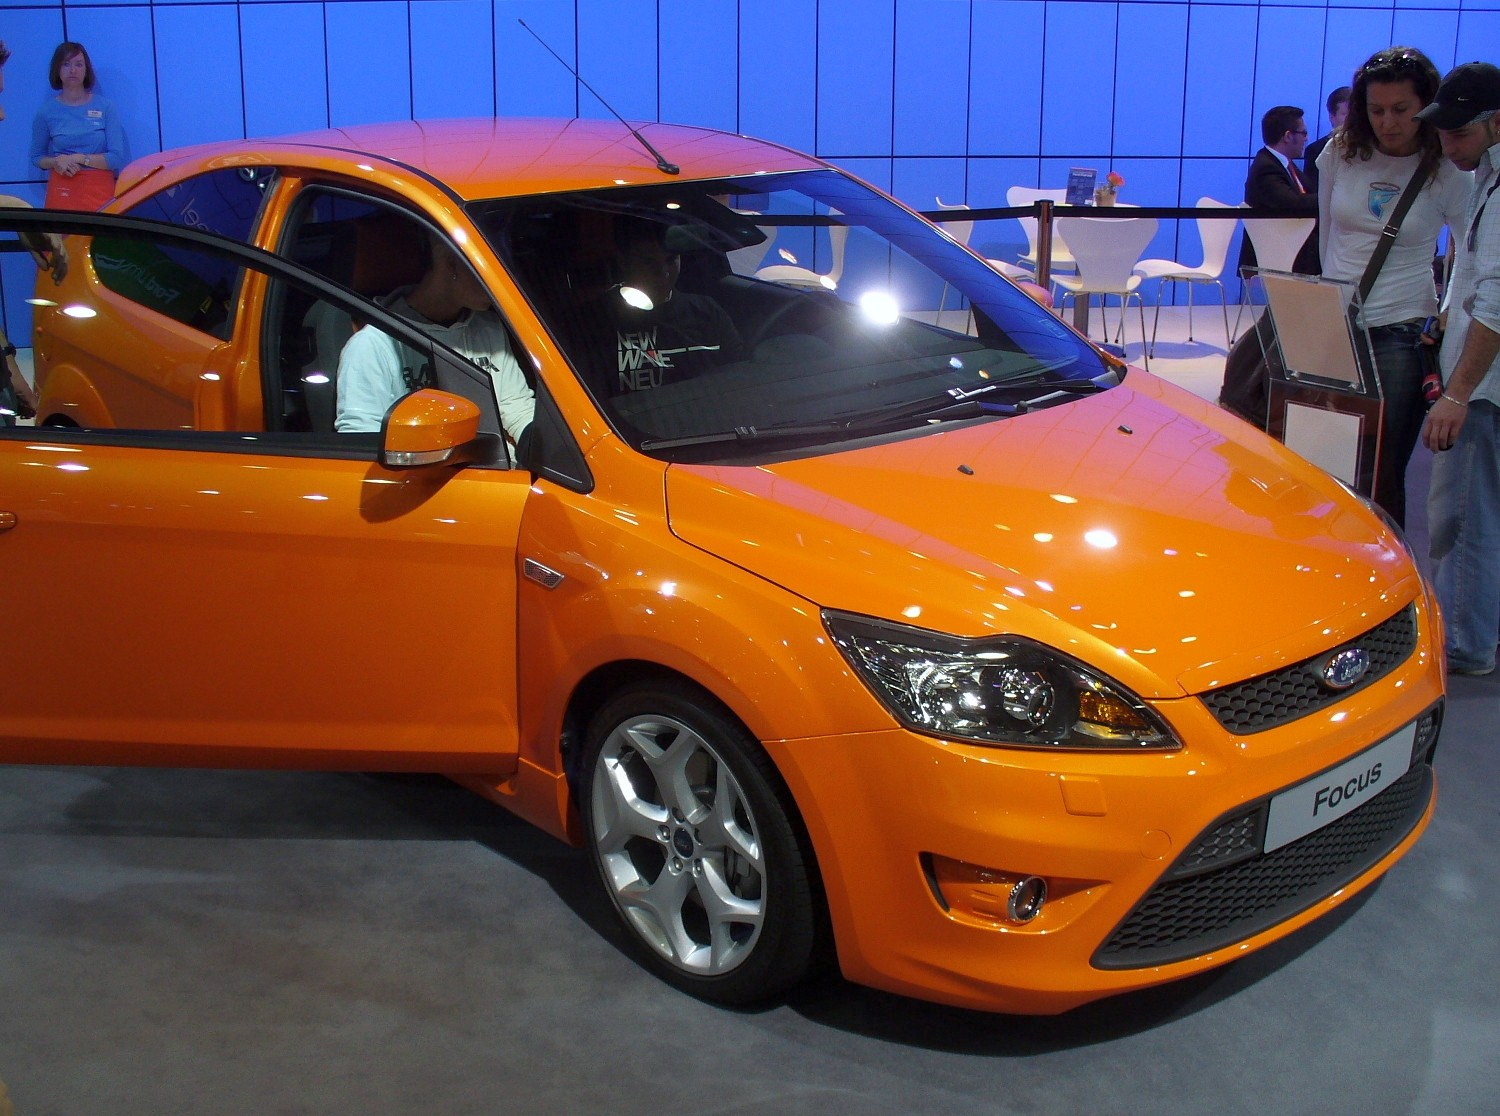 2008 ford focus st orange. Black Bedroom Furniture Sets. Home Design Ideas